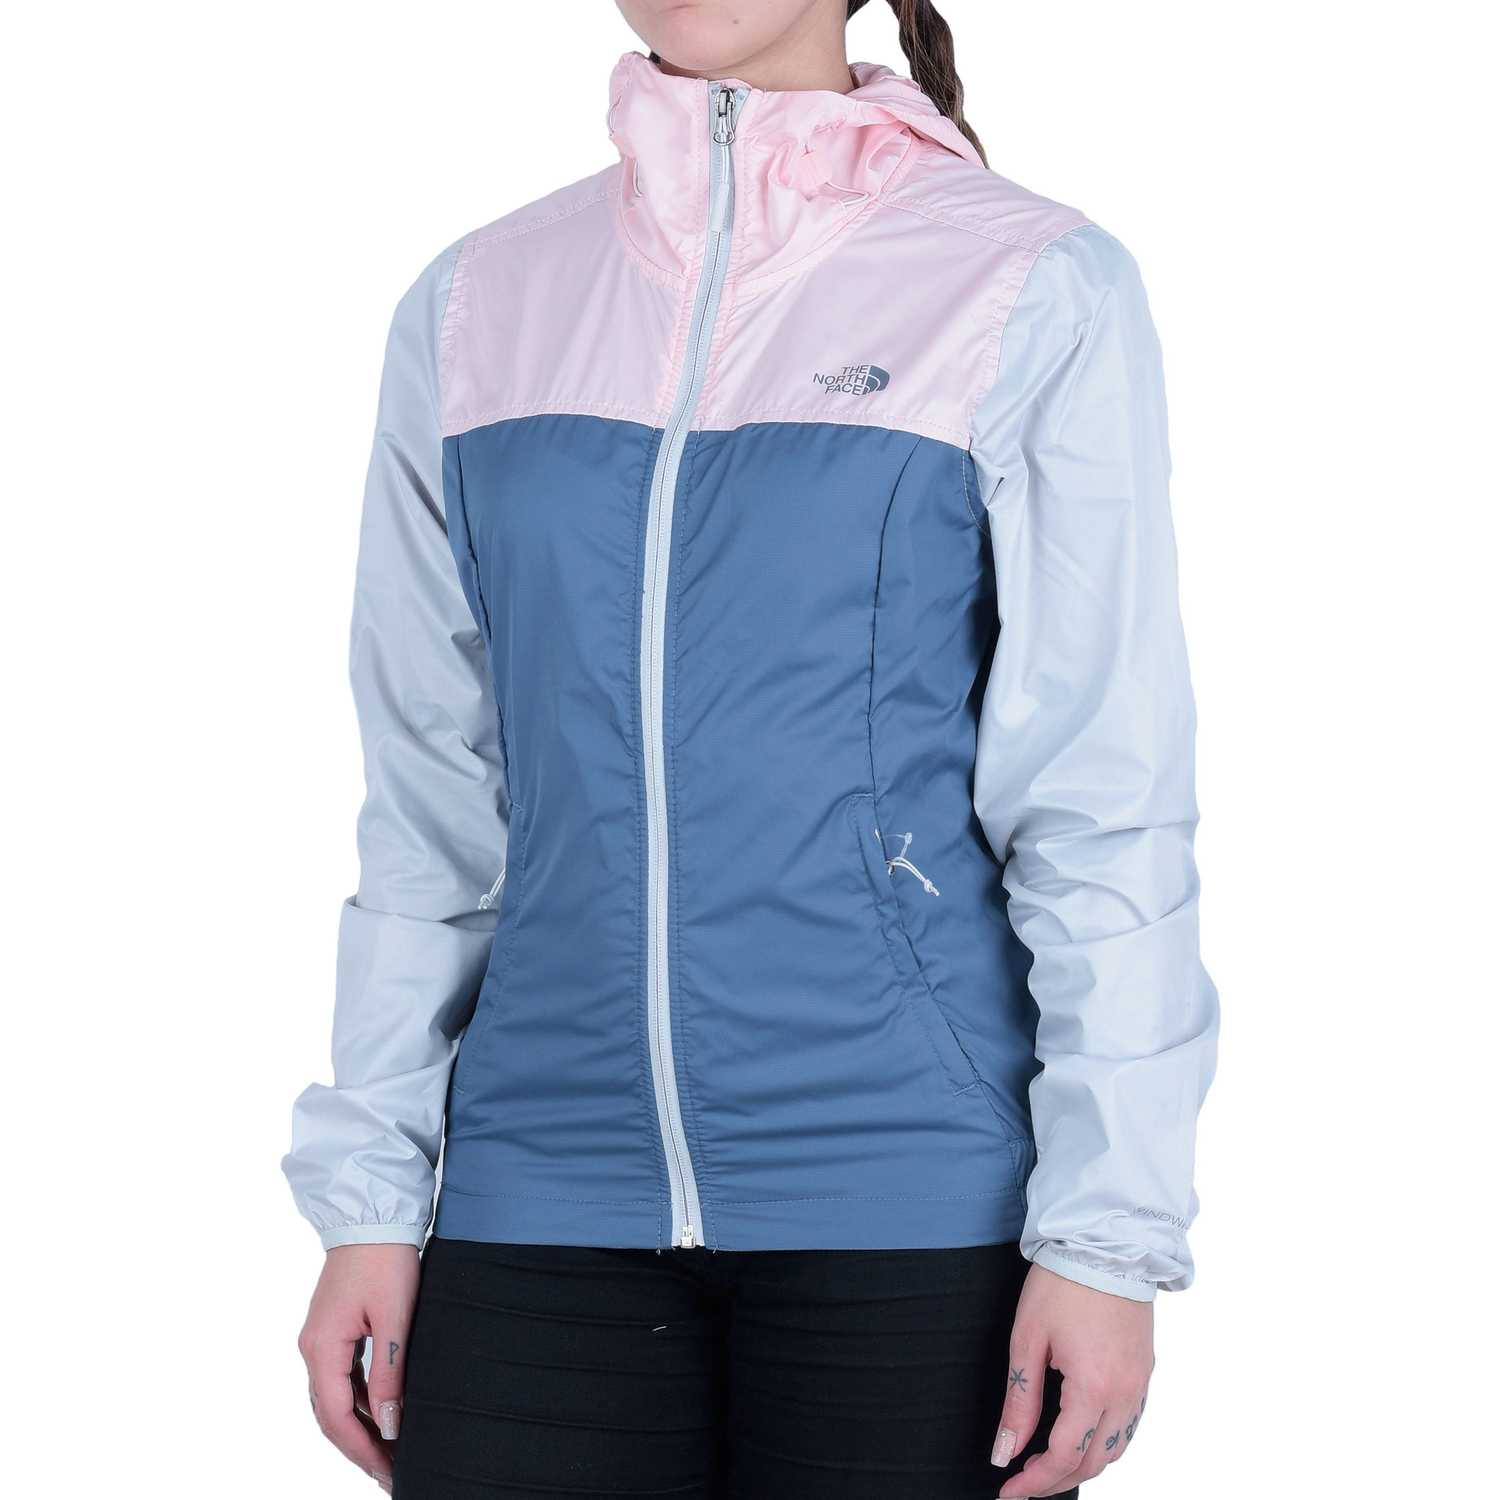 The North Face w cyclone jacket Acero / rosado Viento y Lluvia